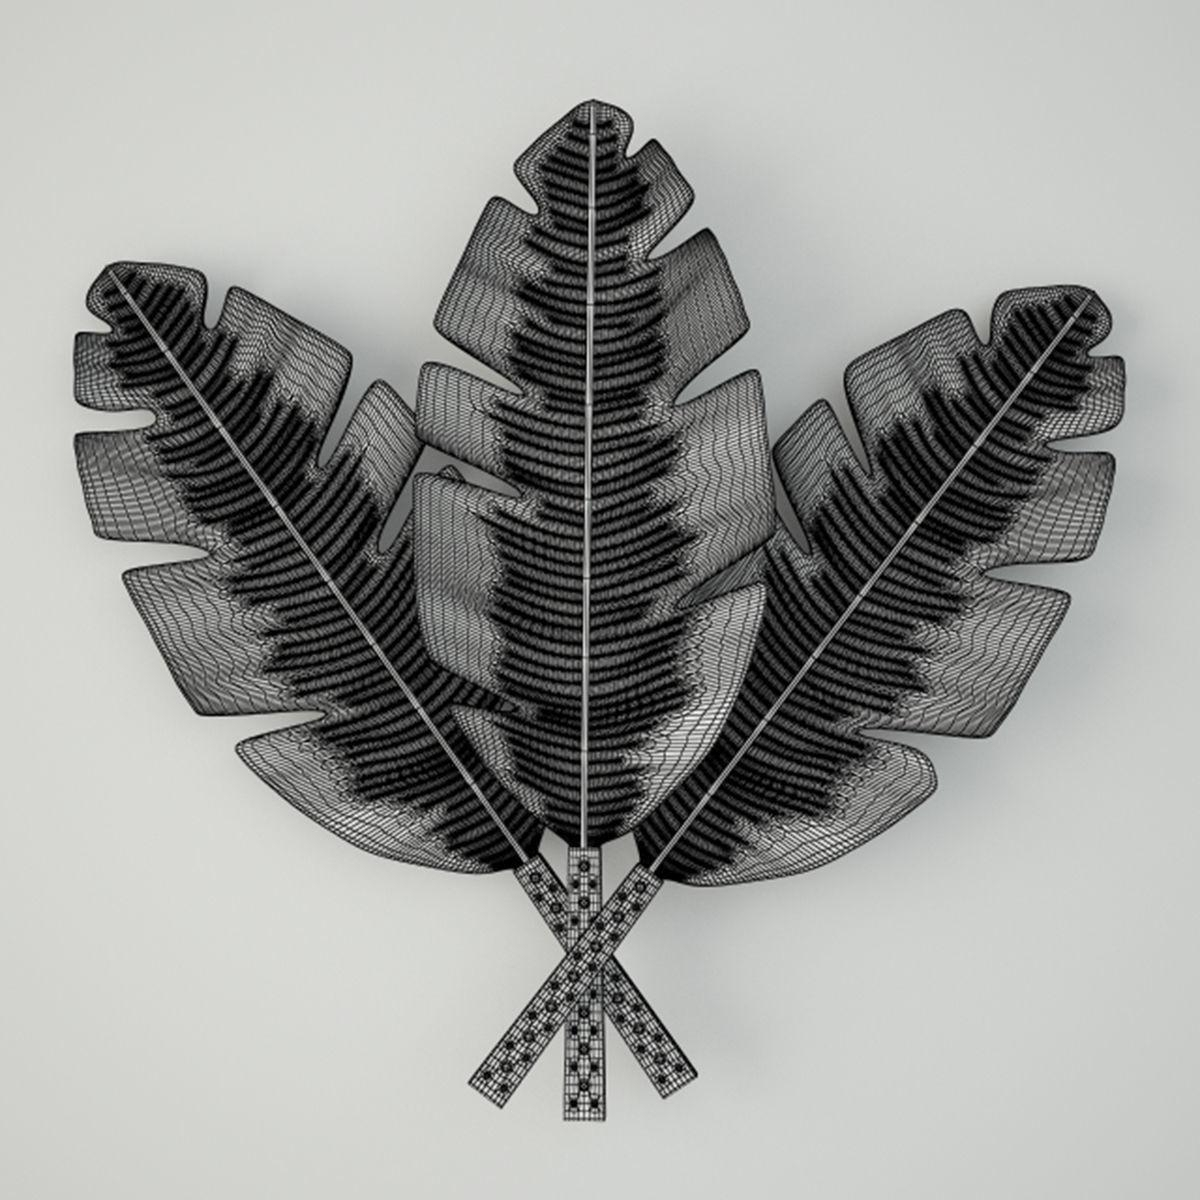 Palm Leaves Metal Wall Art 3D Model | Cgtrader For Palm Leaf Wall Art (Image 13 of 20)